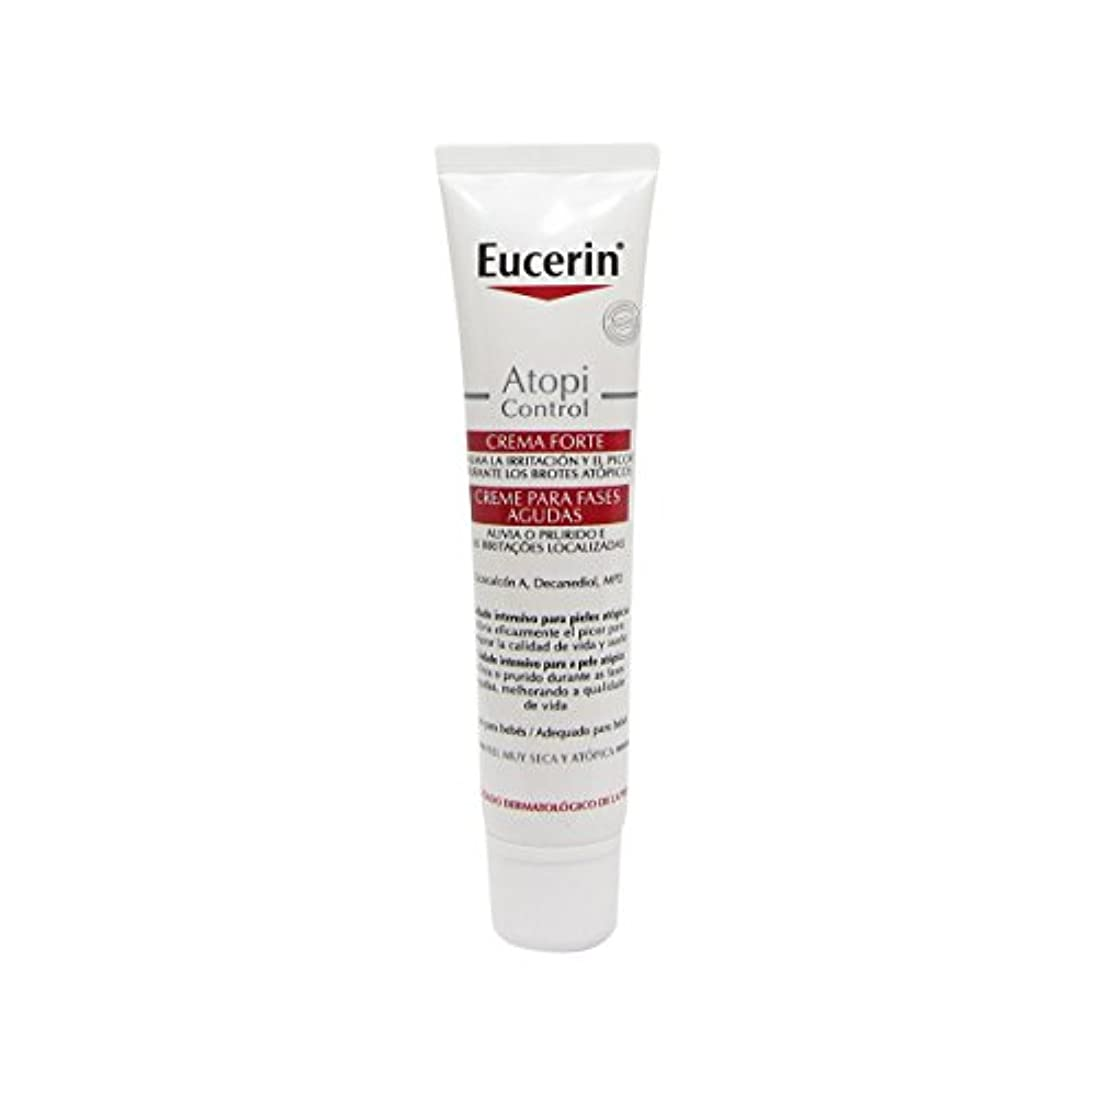 産地小売退屈なEucerin Atopicontrol Acute Care Cream 40ml [並行輸入品]